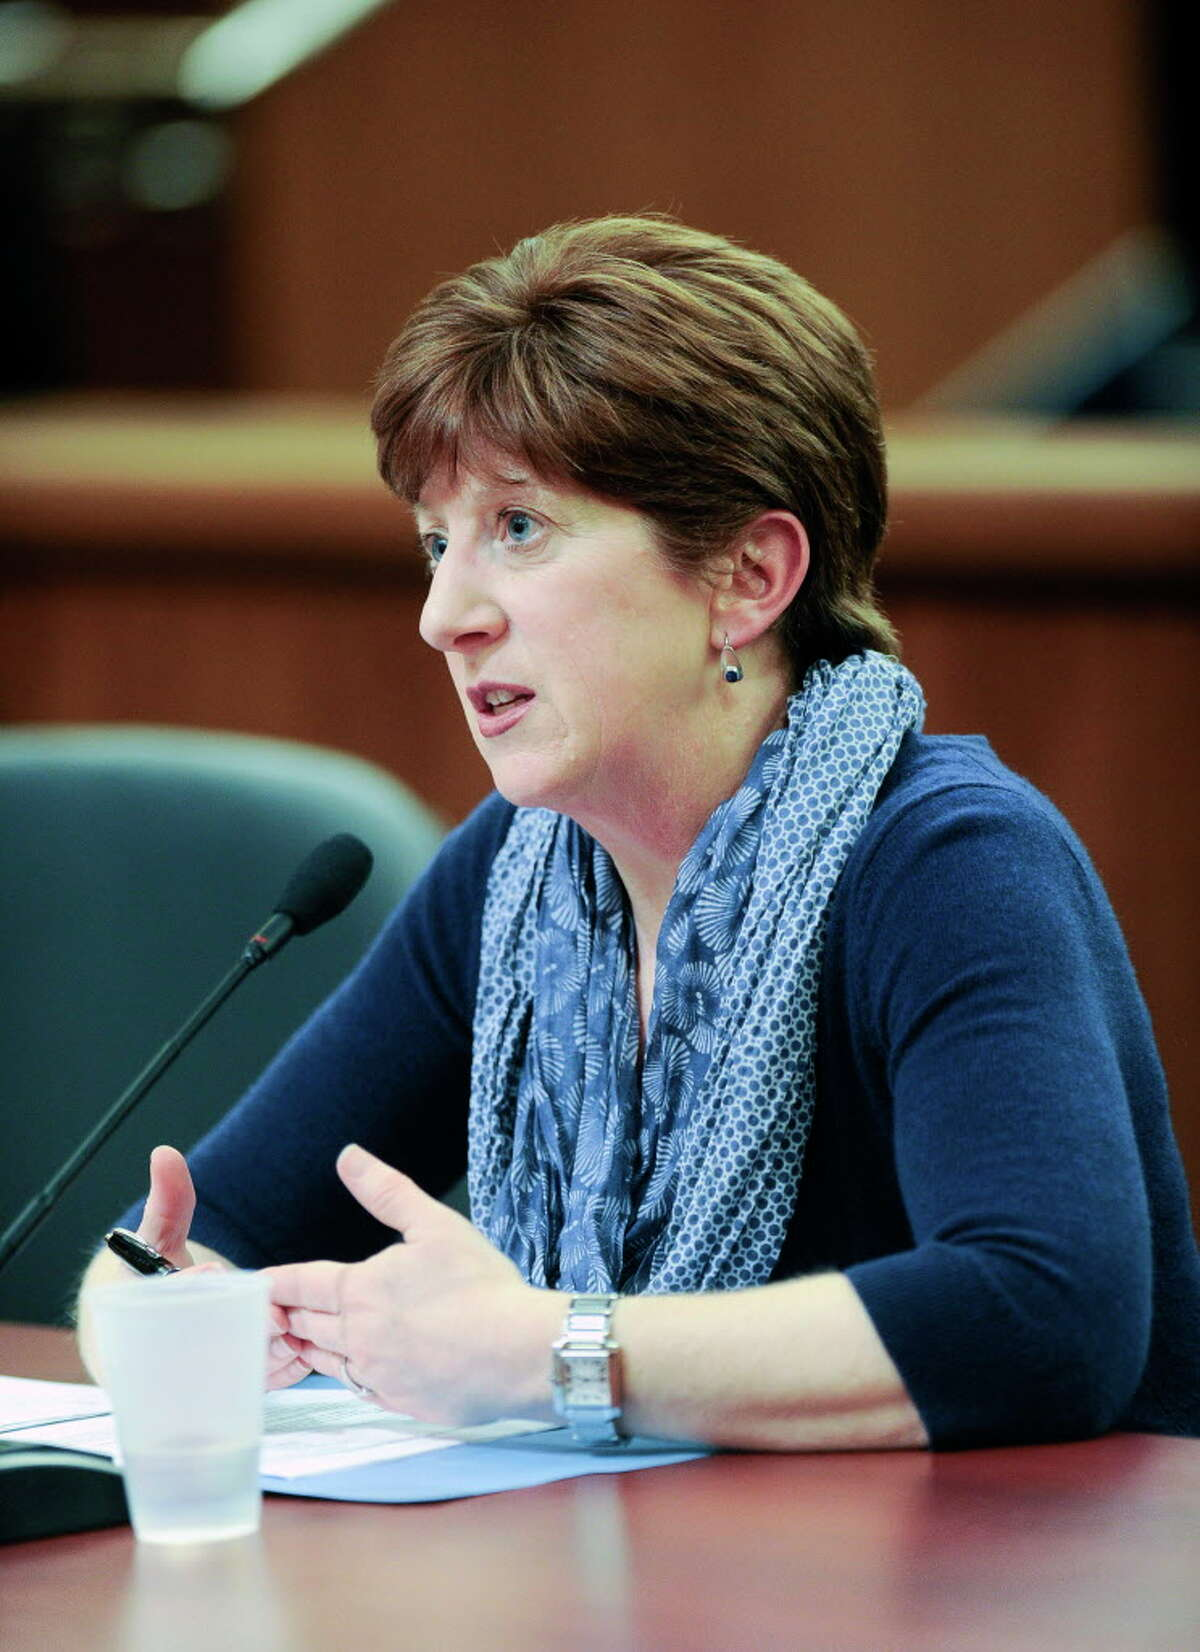 Albany Mayor Kathy M. Sheehan, testifies during a joint legislative budget hearing on local government funding from the state on Monday, Jan. 30, 2017, in Albany, N.Y. (AP Photo/Hans Pennink)